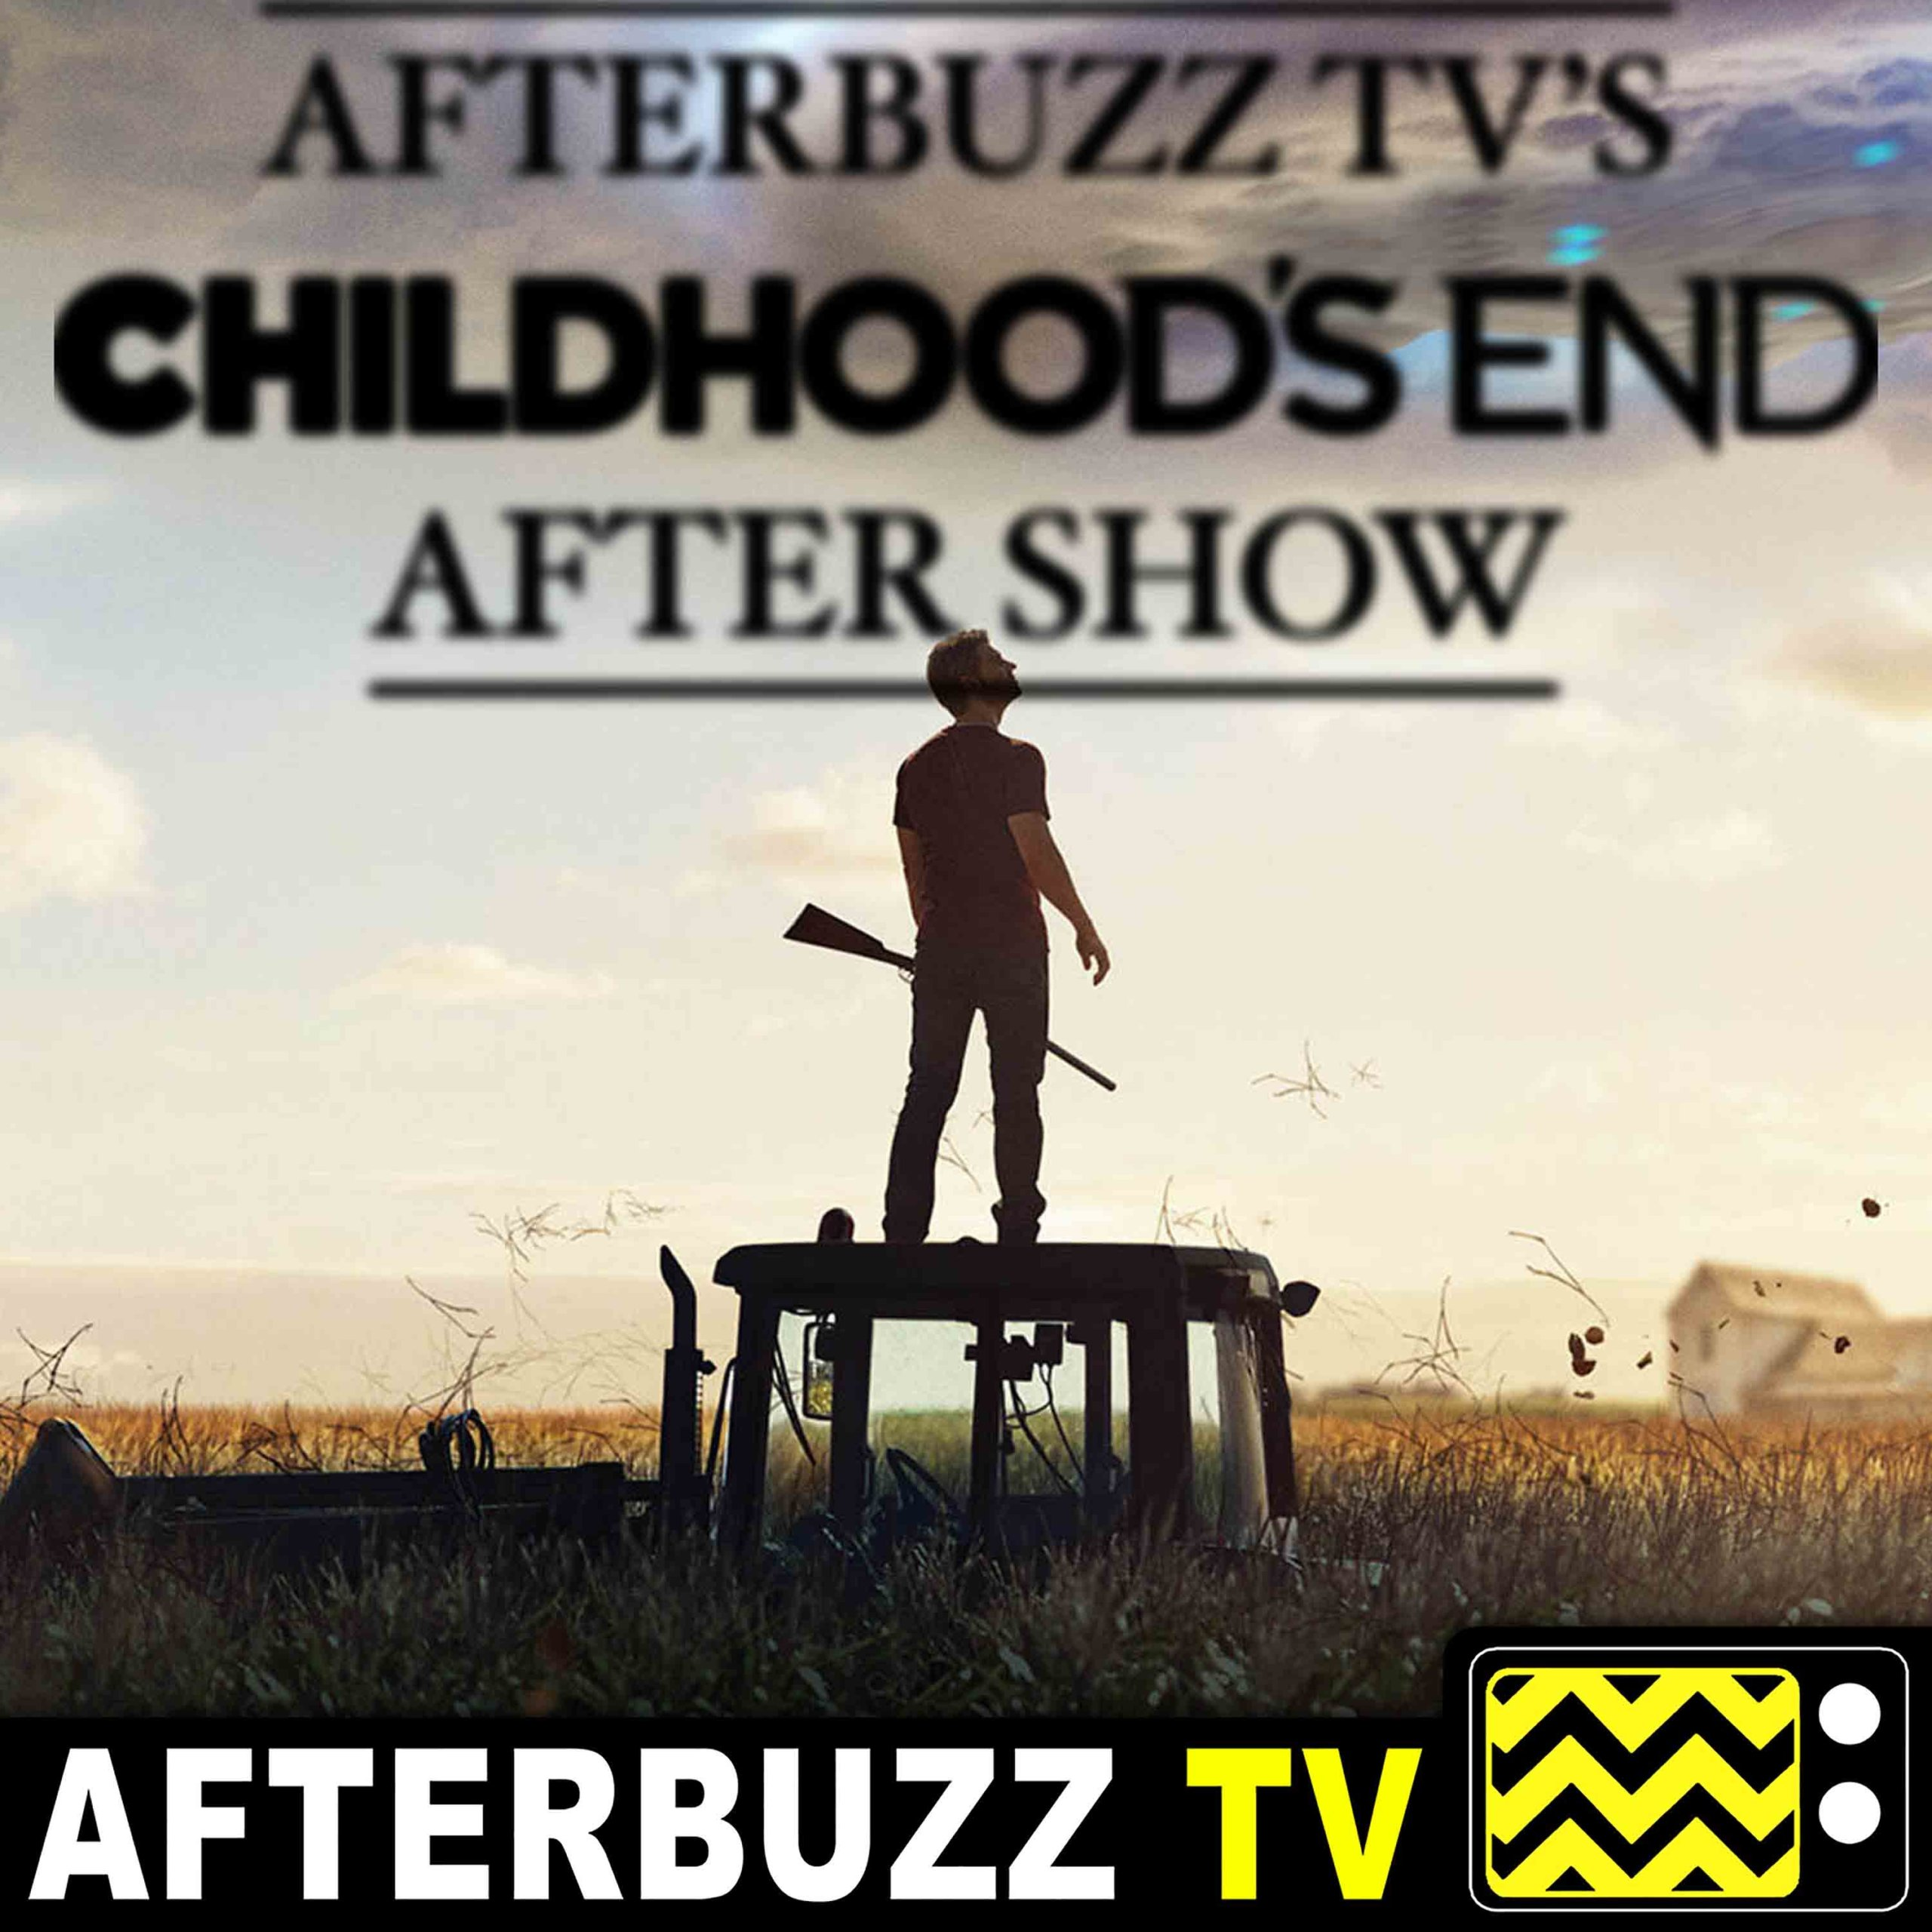 Childhood's End | The Overlords, The Deceivers, The Children | AfterBuzz TV AfterShow